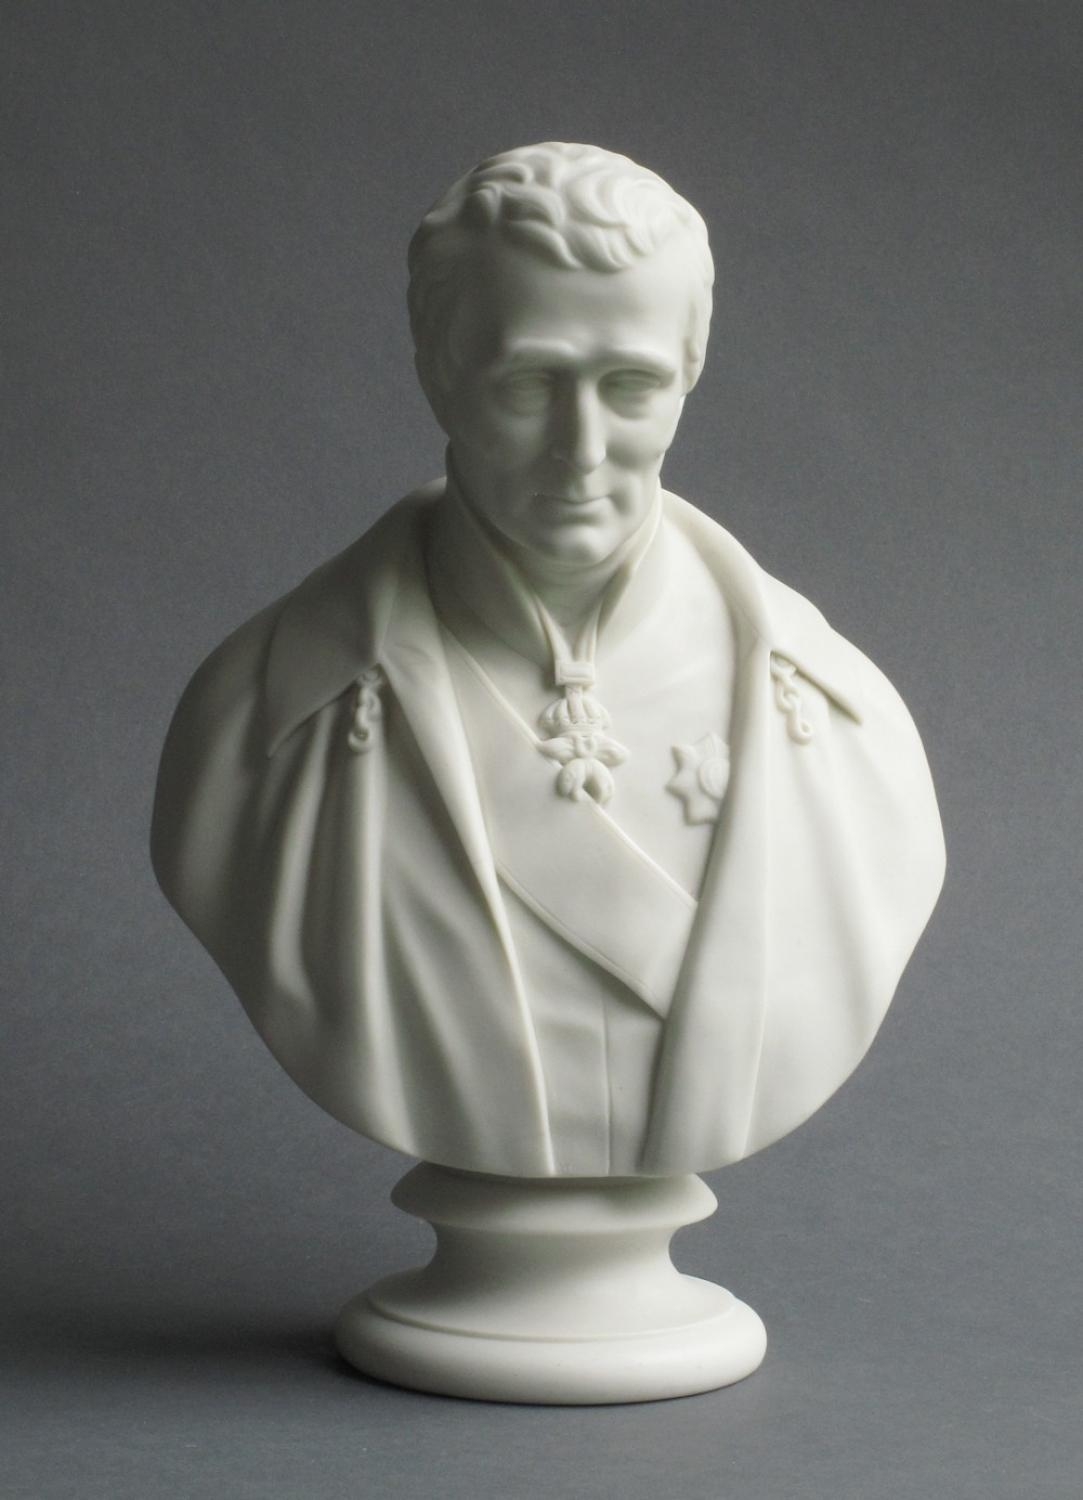 Copeland bust of the Duke of Wellington